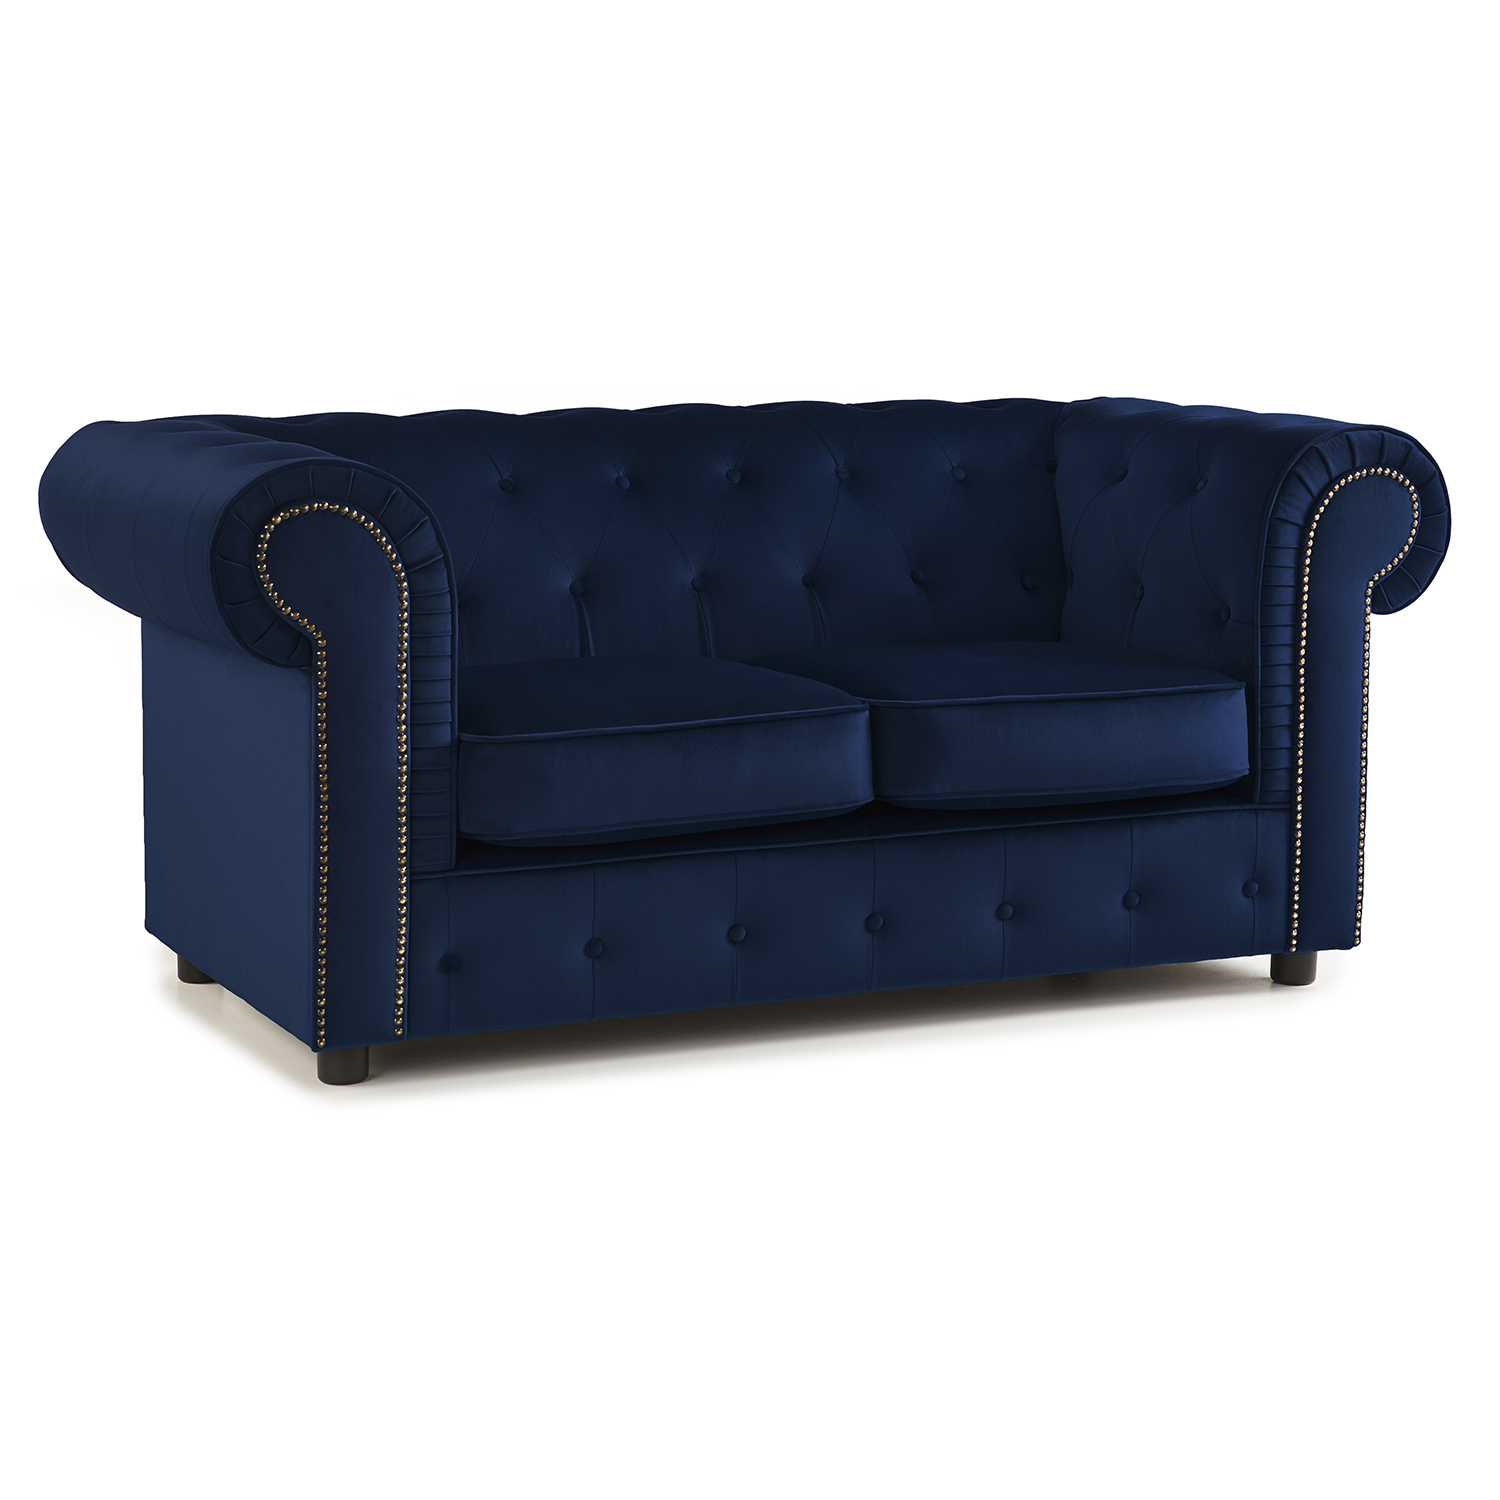 The Ashcroft Soft Velvet Chesterfield 2 Seater Sofa - Indigo